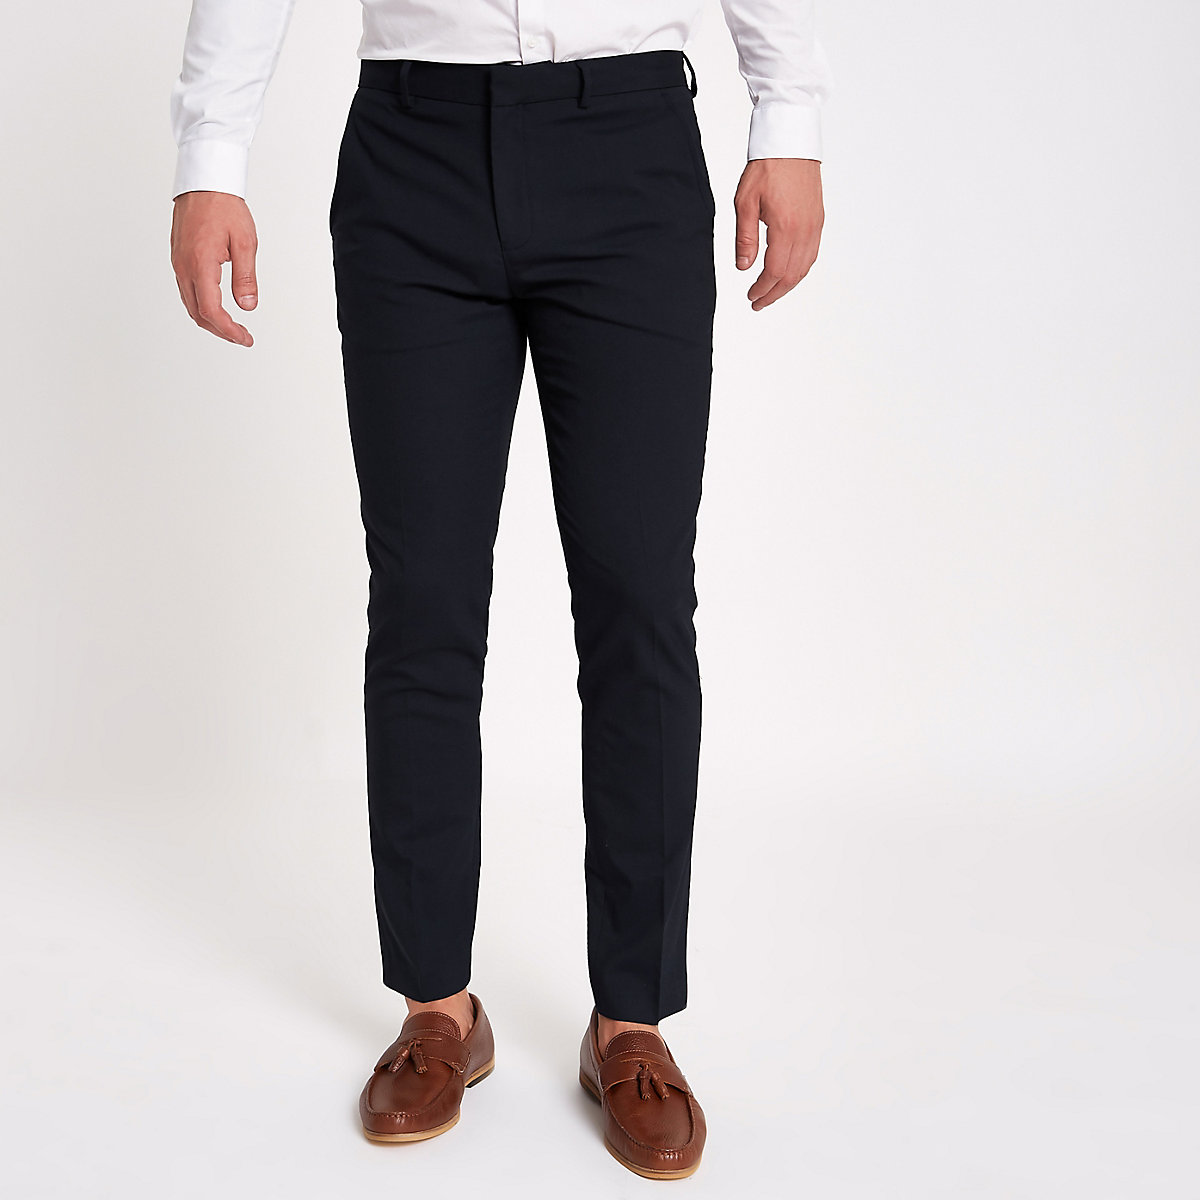 Marineblaue, elegante Skinny Fit Hose